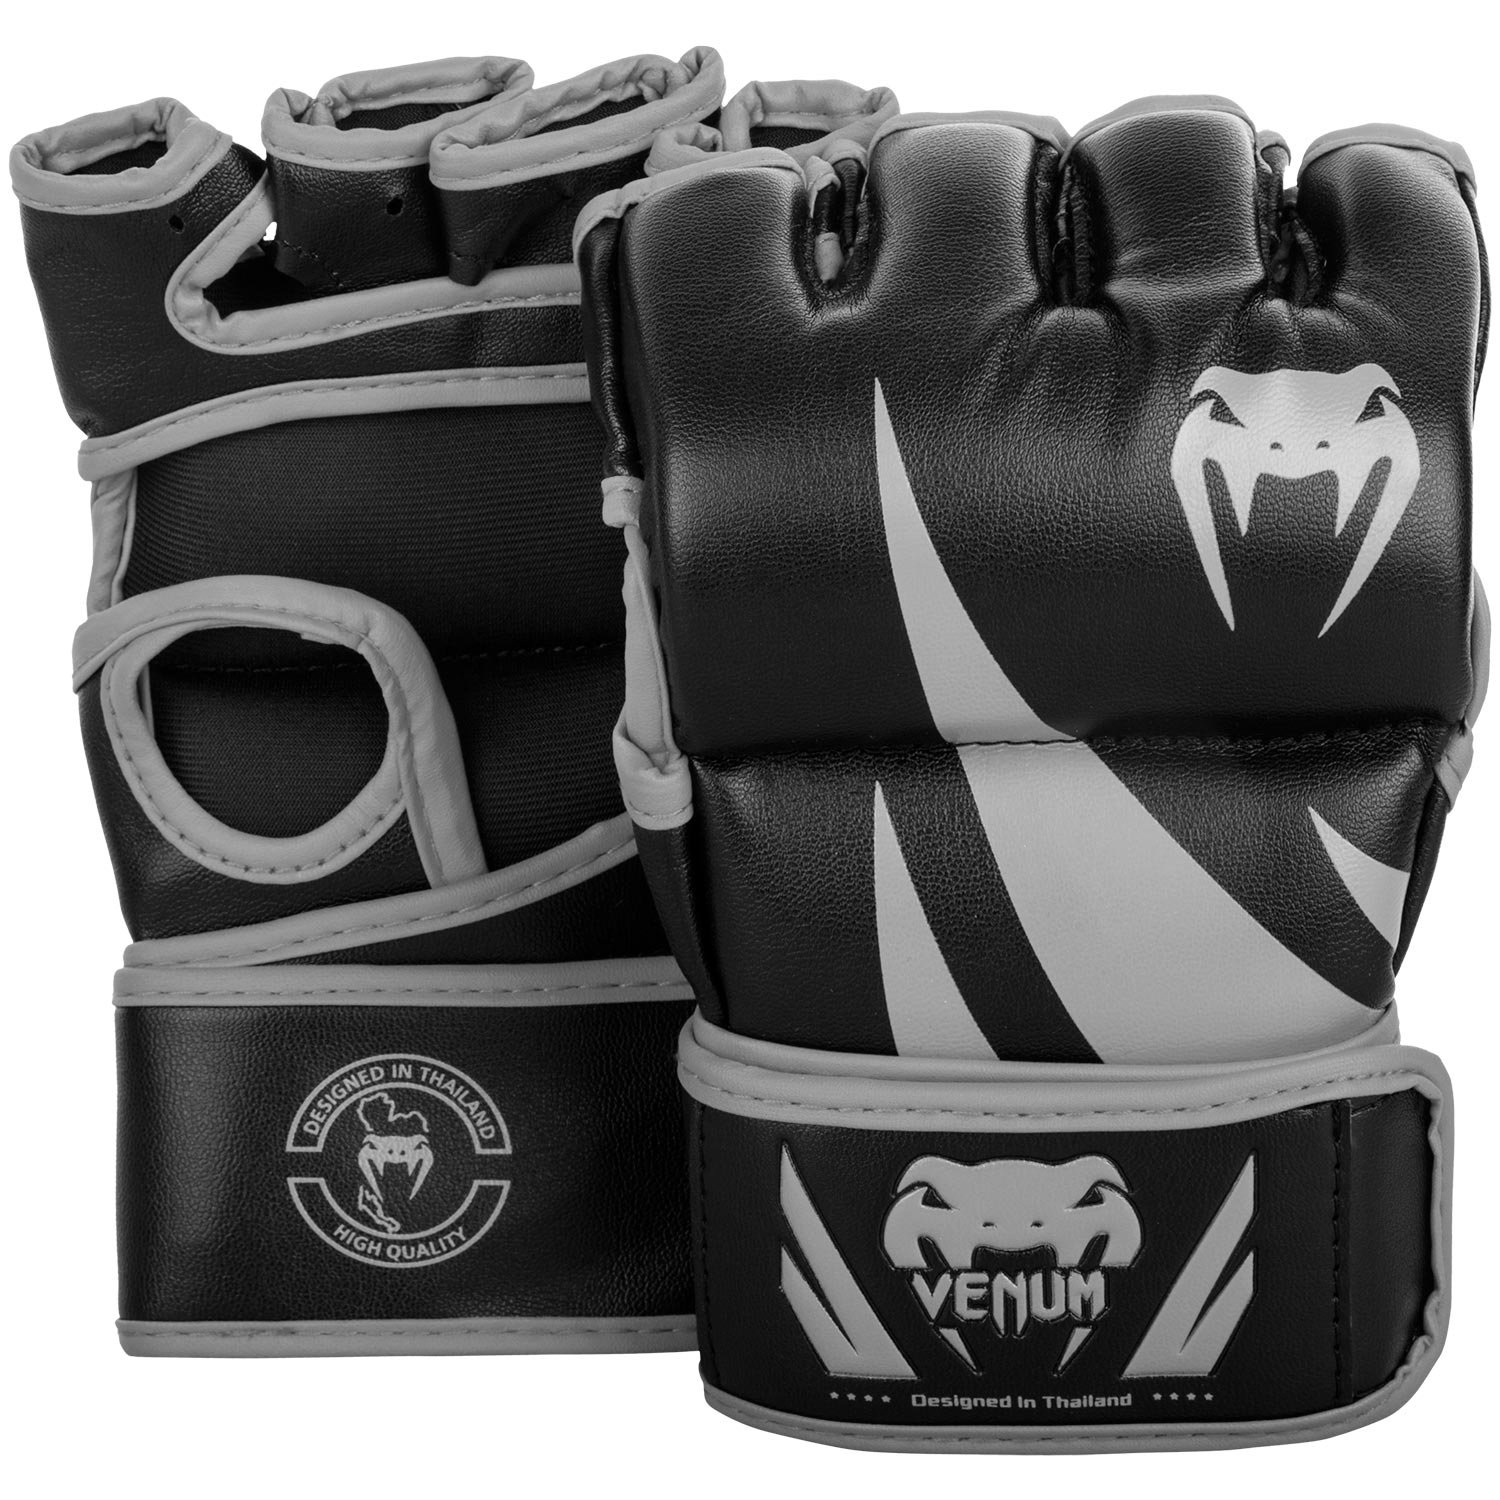 Venum Challenger MMA Gloves - Without Thumb - M, Black/Grey, Medium by Venum